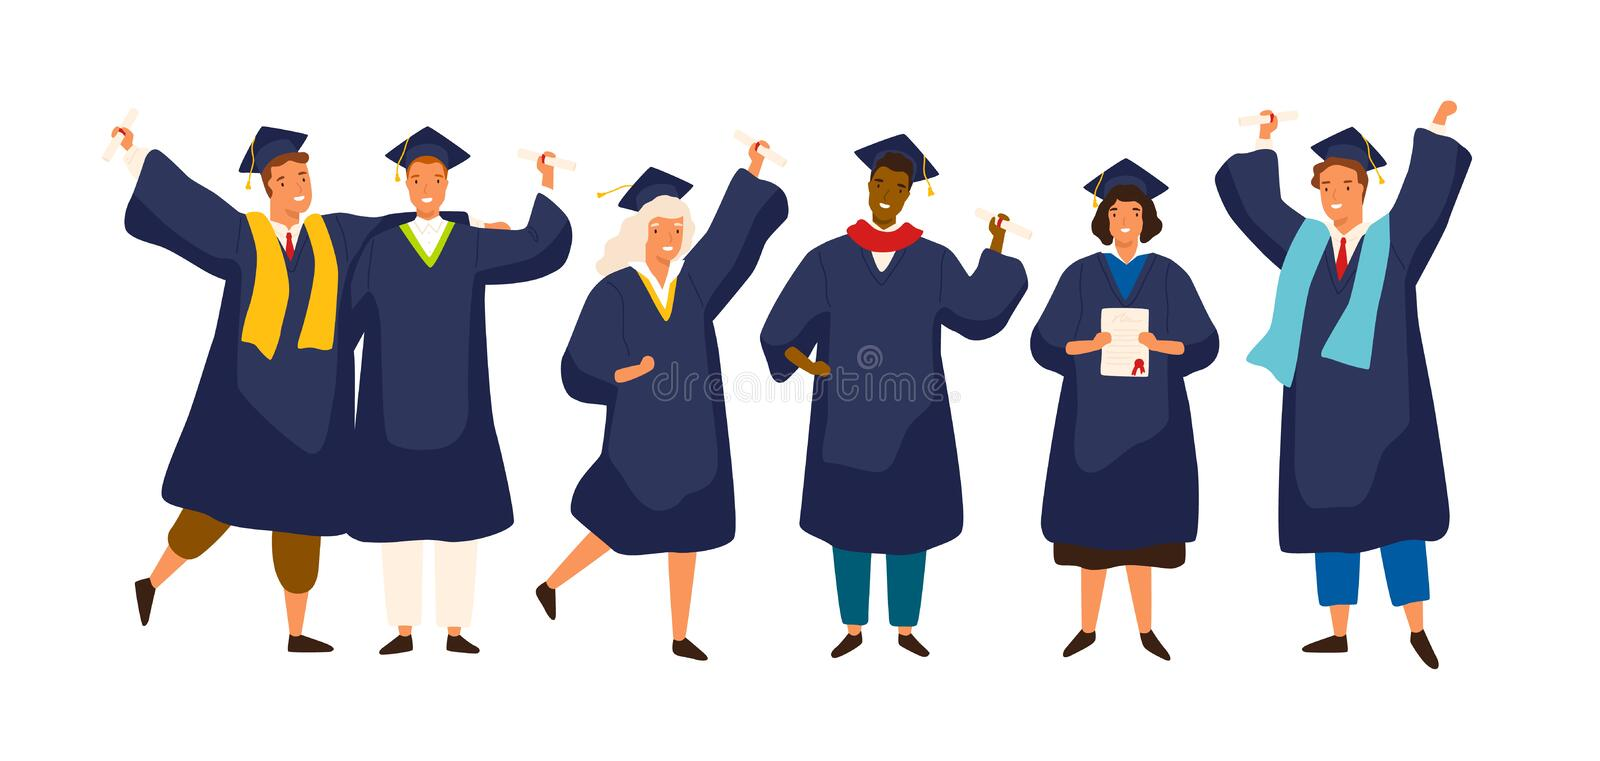 Group of happy graduated students wearing academic dress, gown or robe and graduation cap and holding diploma. Boys and. Girls celebrating university graduation stock illustration